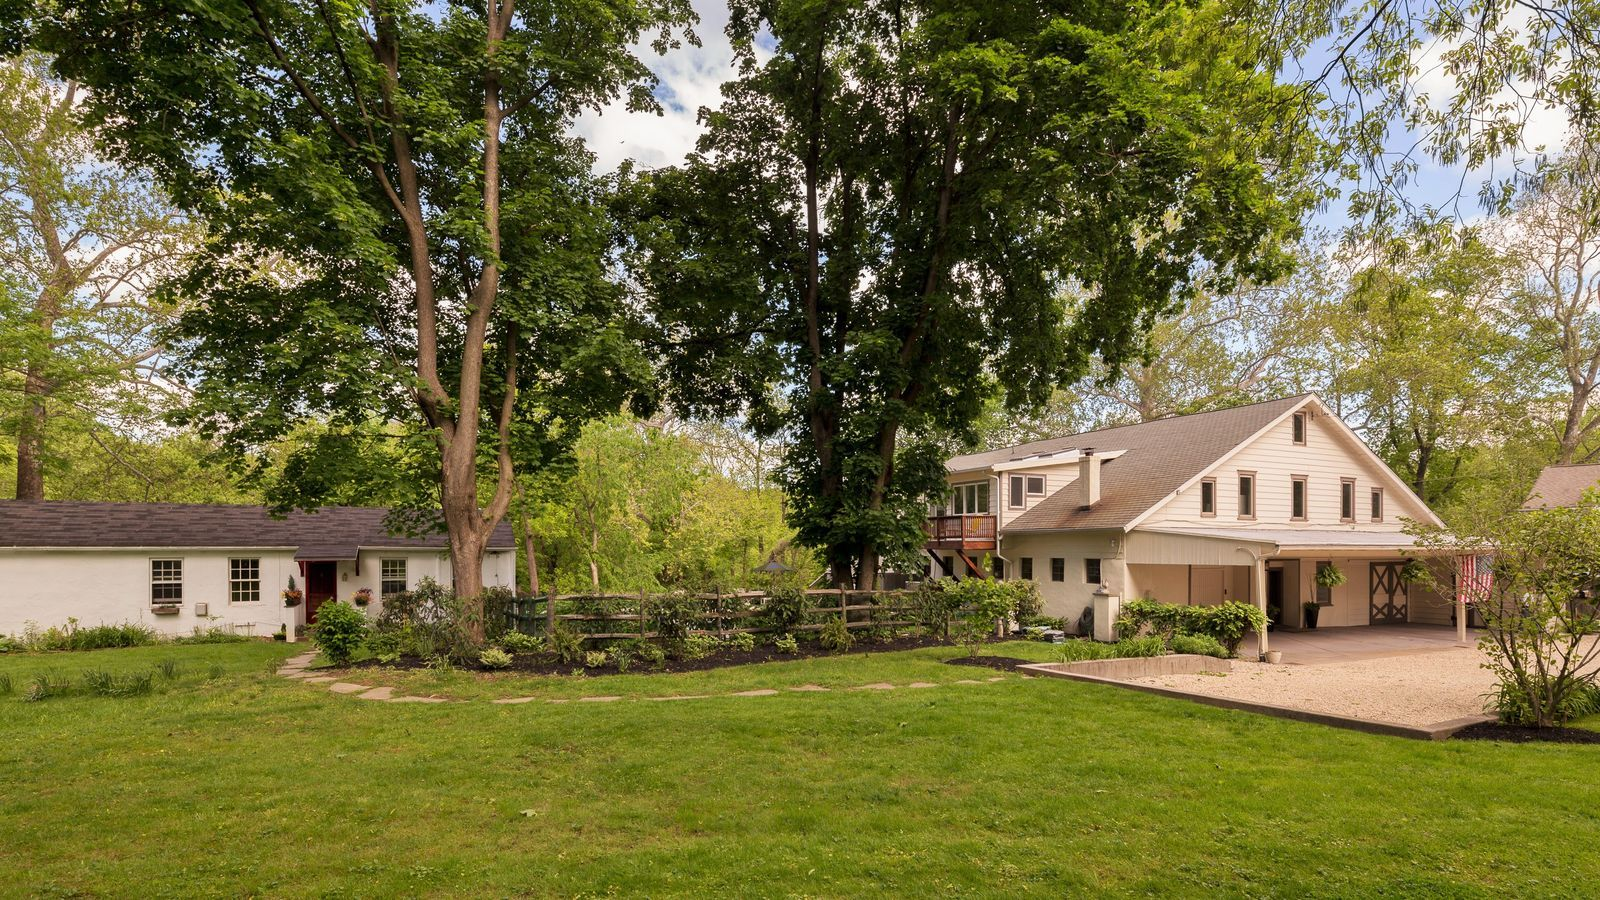 Converted Barn On Wissahickon Creek Asks 129m Philly Real Estate